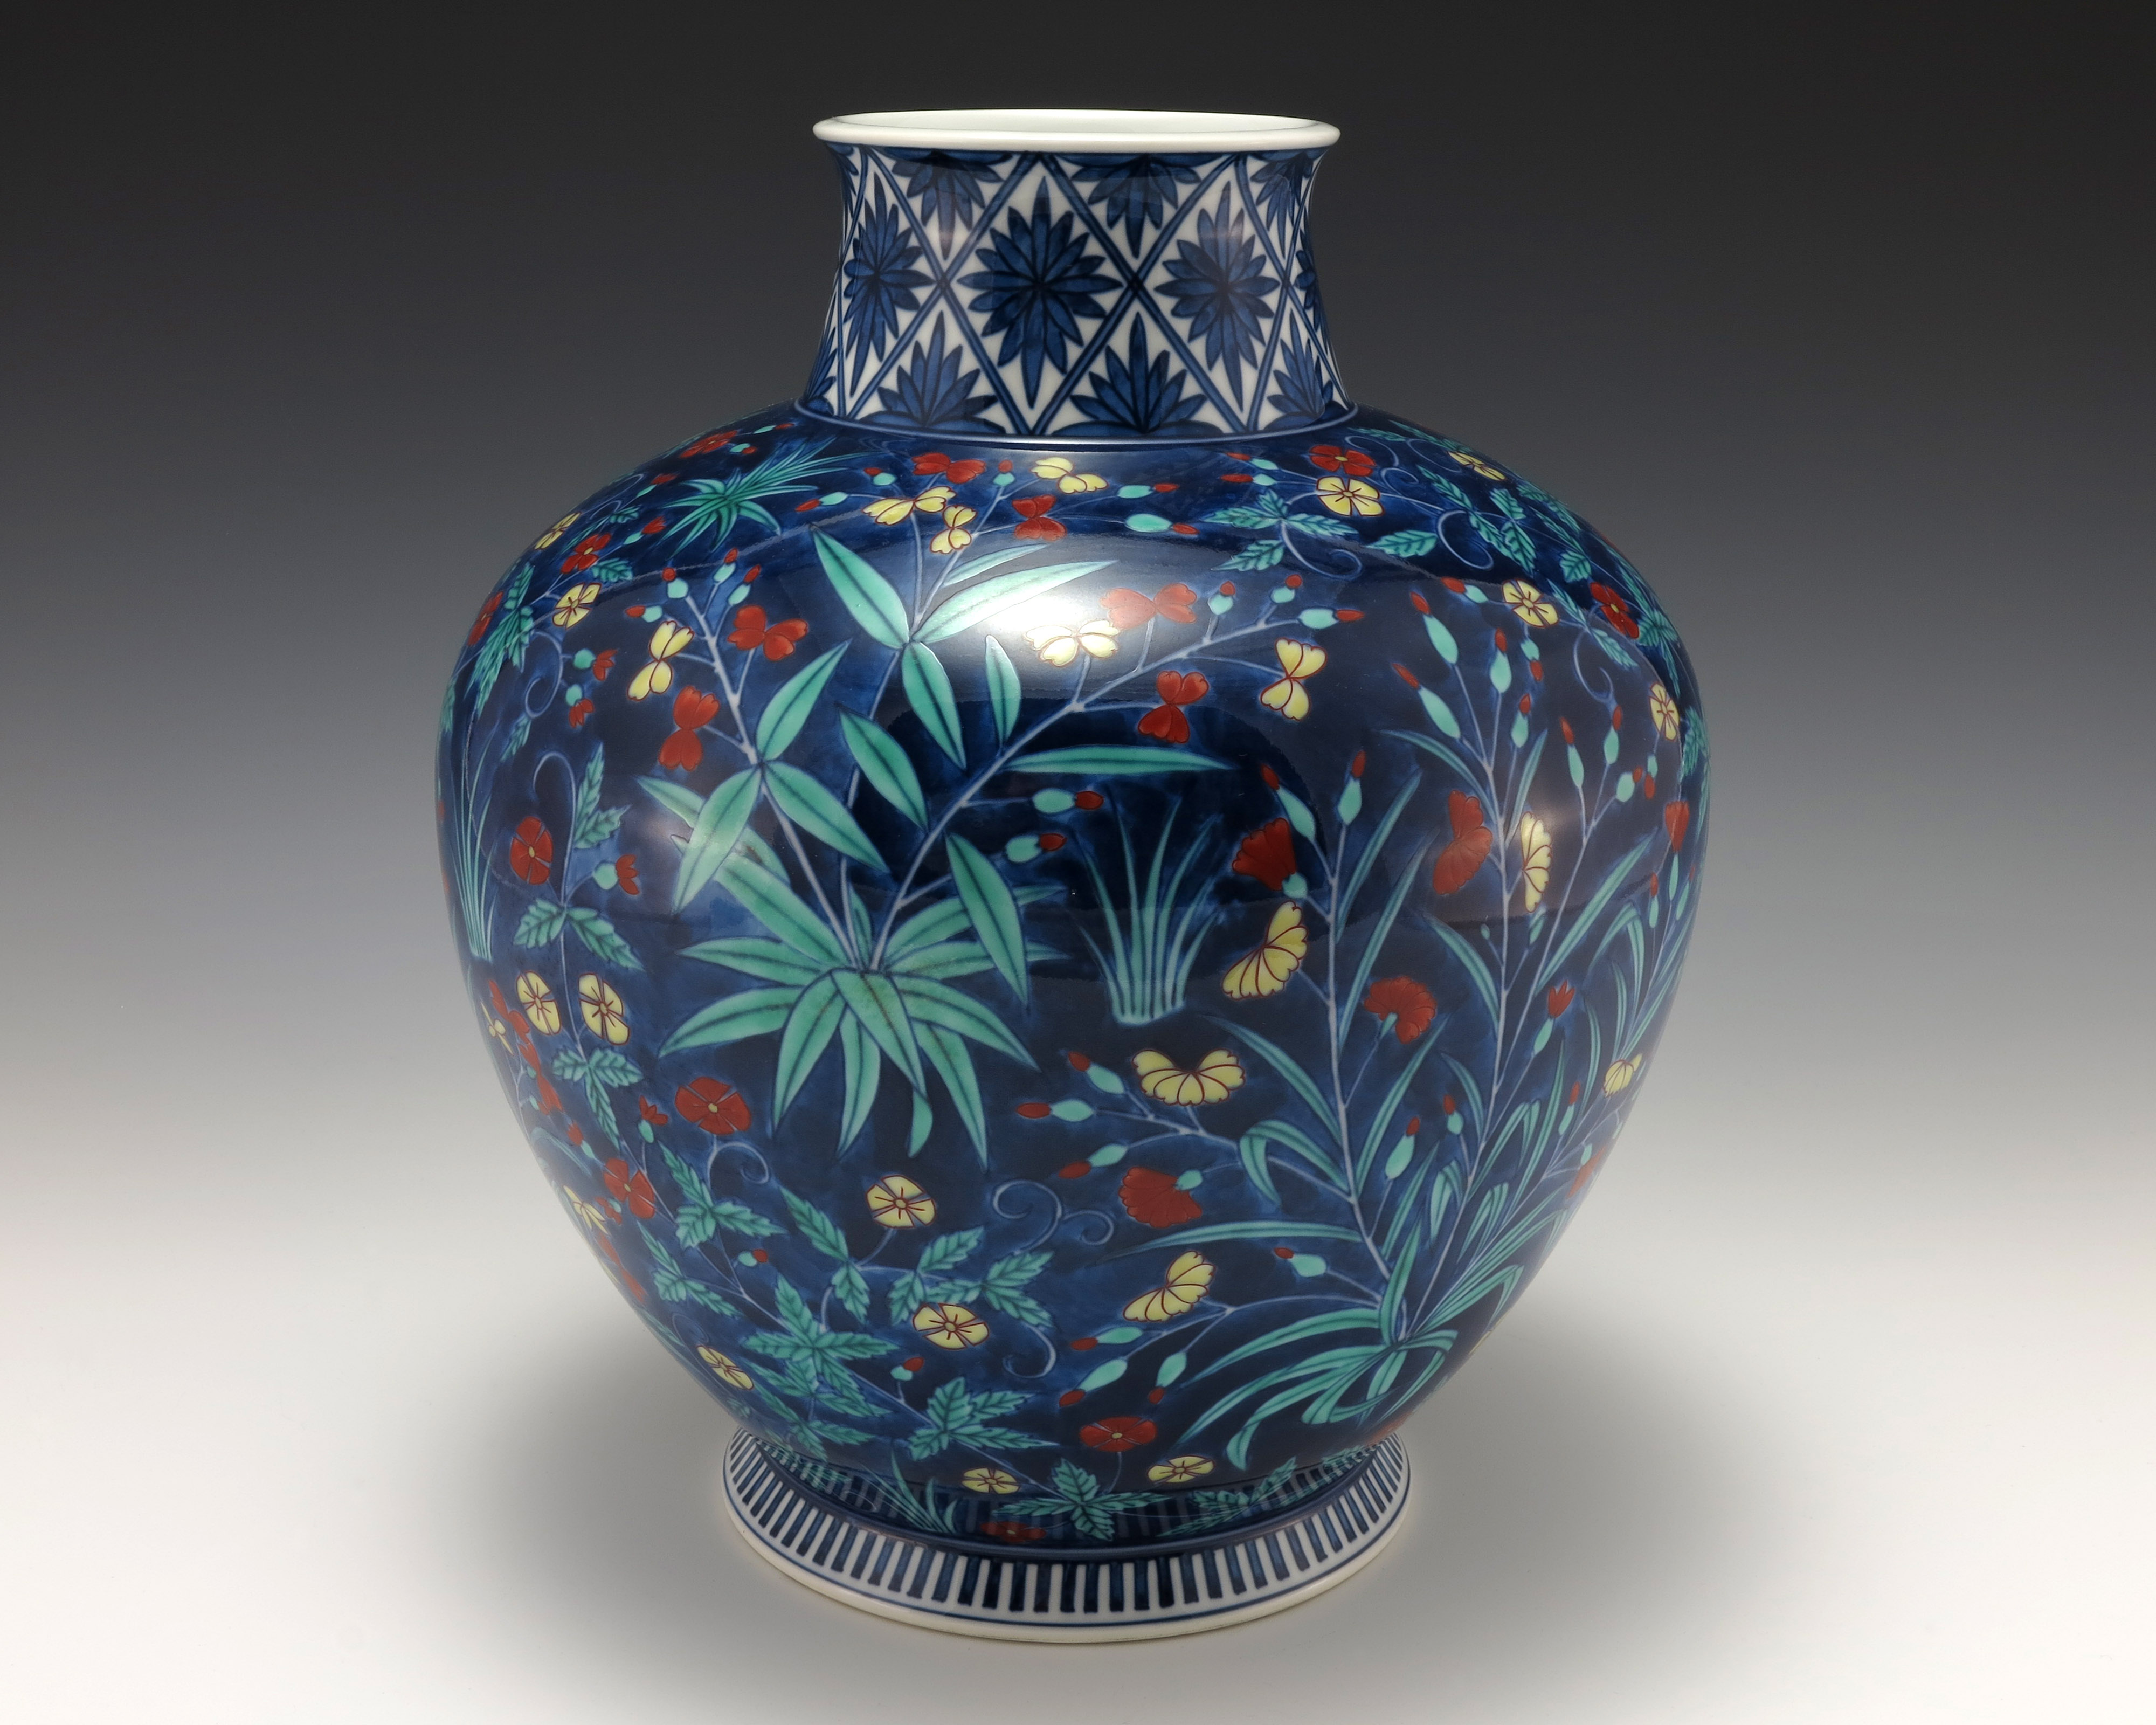 File State Gifts Blue Vase Jpg Wikimedia Commons